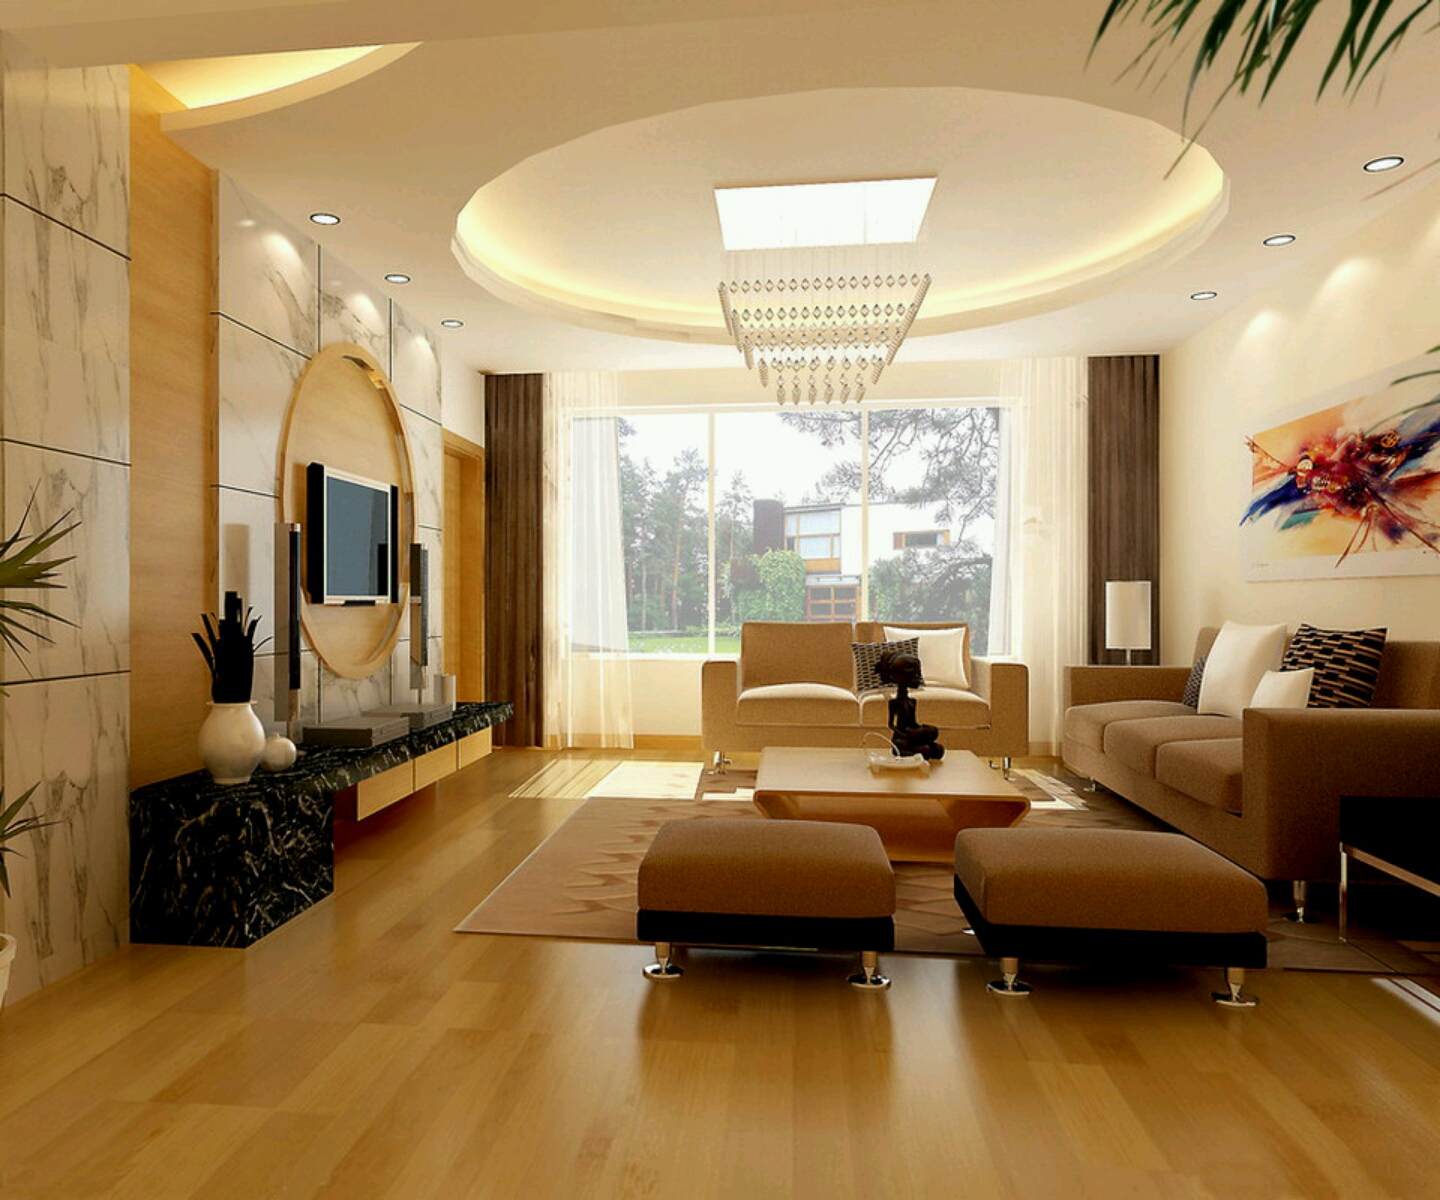 Modern interior decoration living rooms ceiling designs ideas new home designs Latest decoration ideas